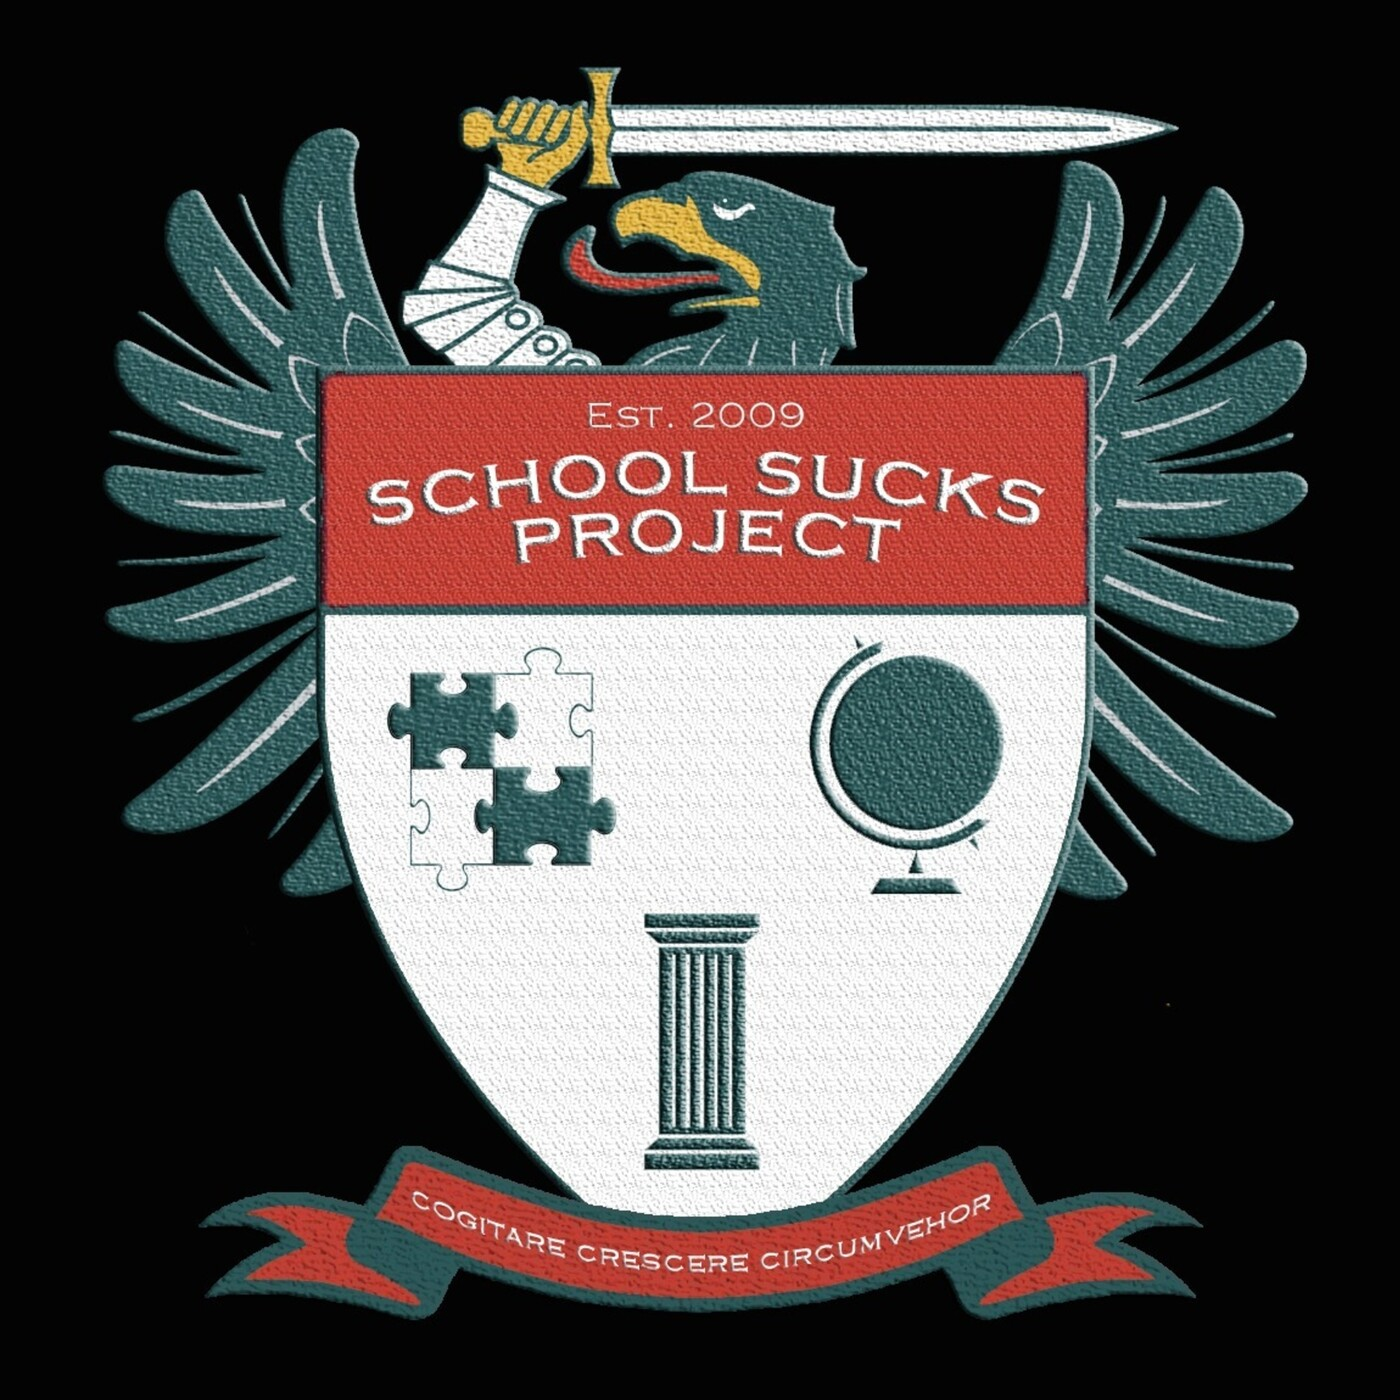 146a: School Sucks Radio #4 - The Challenges of A Thoughtful Tutor